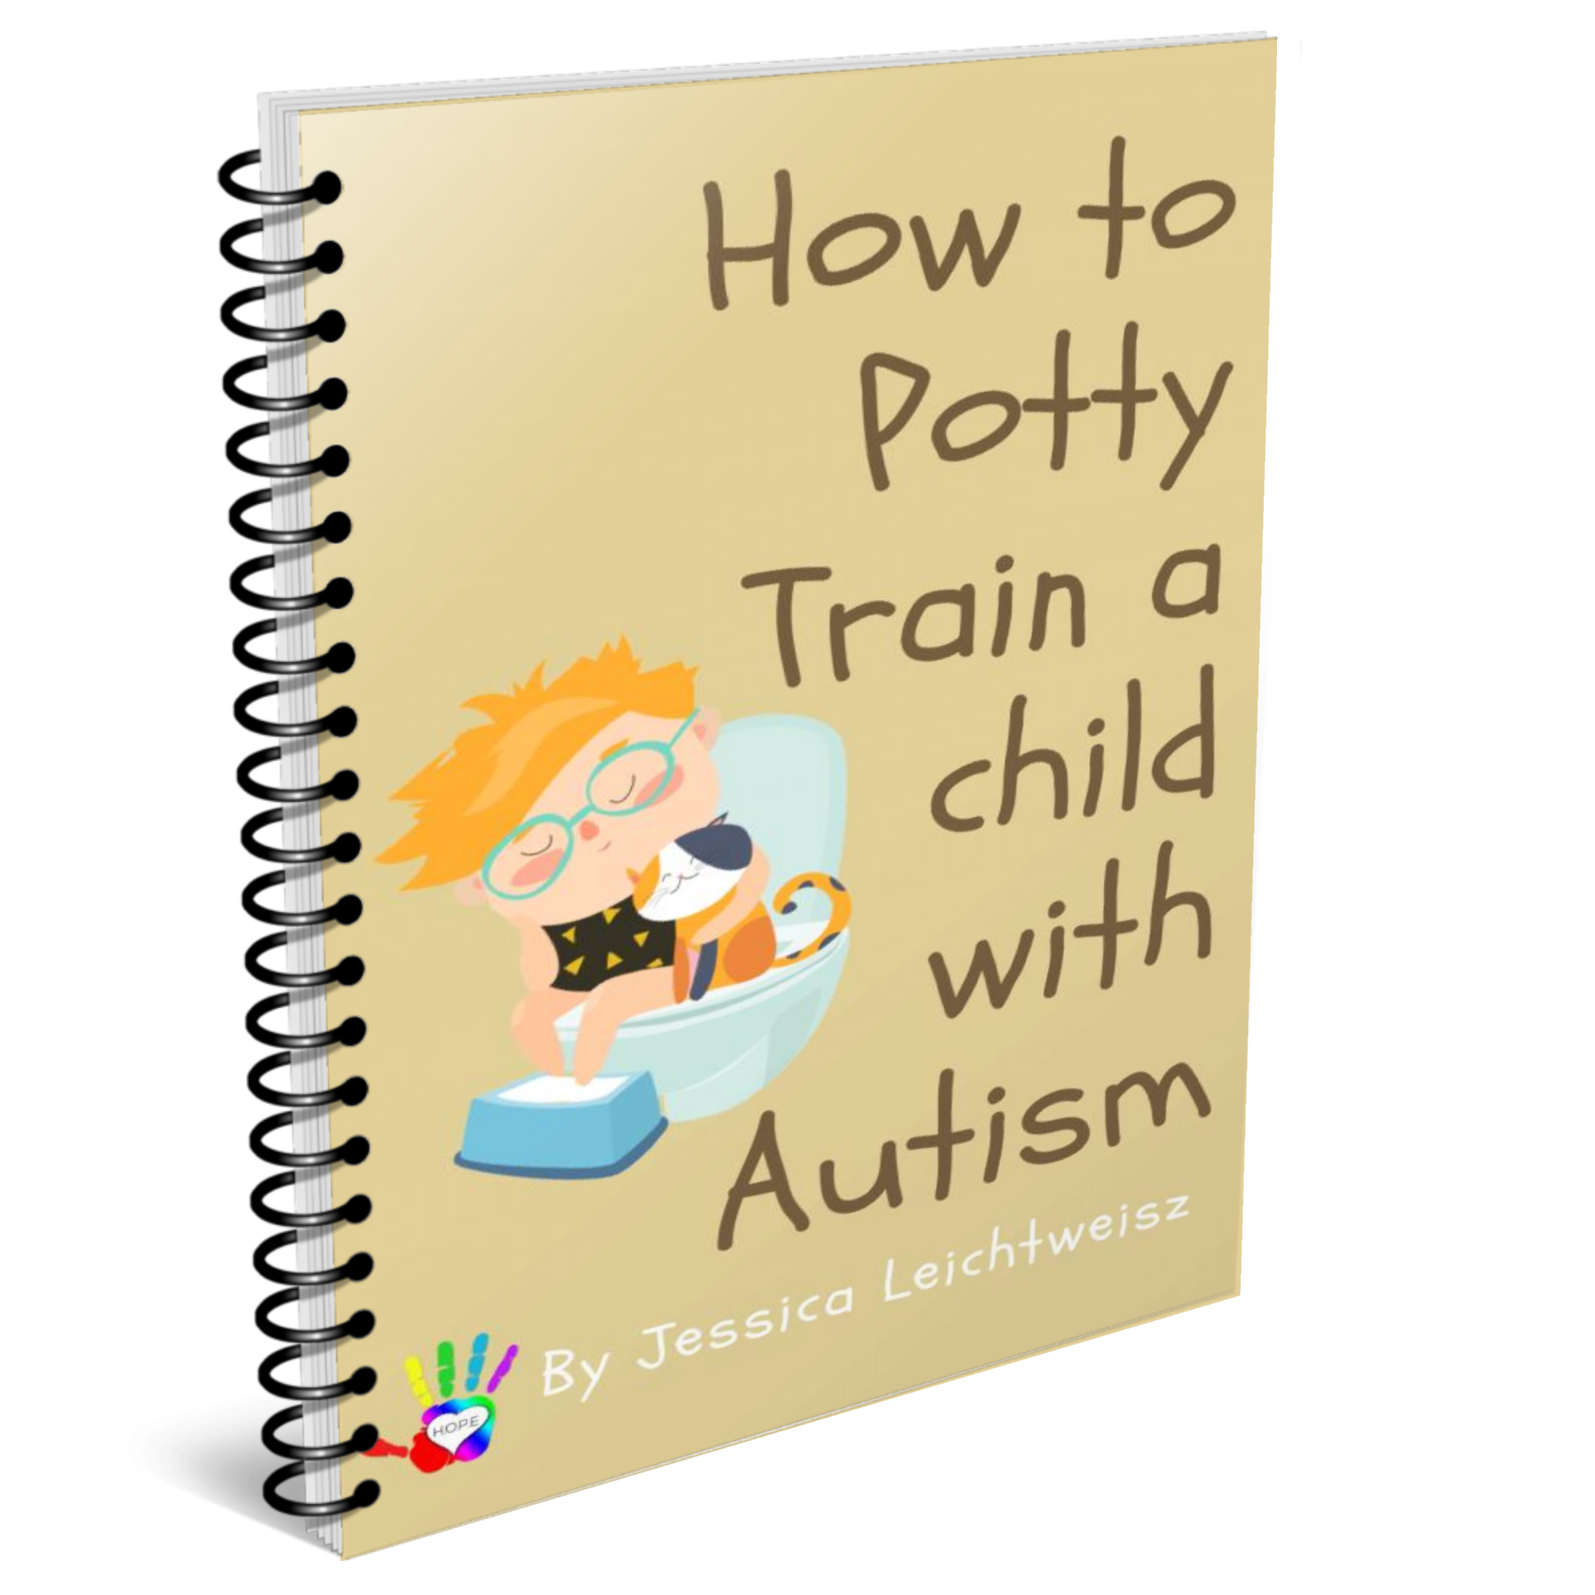 How to Potty Train Your Child With Autism